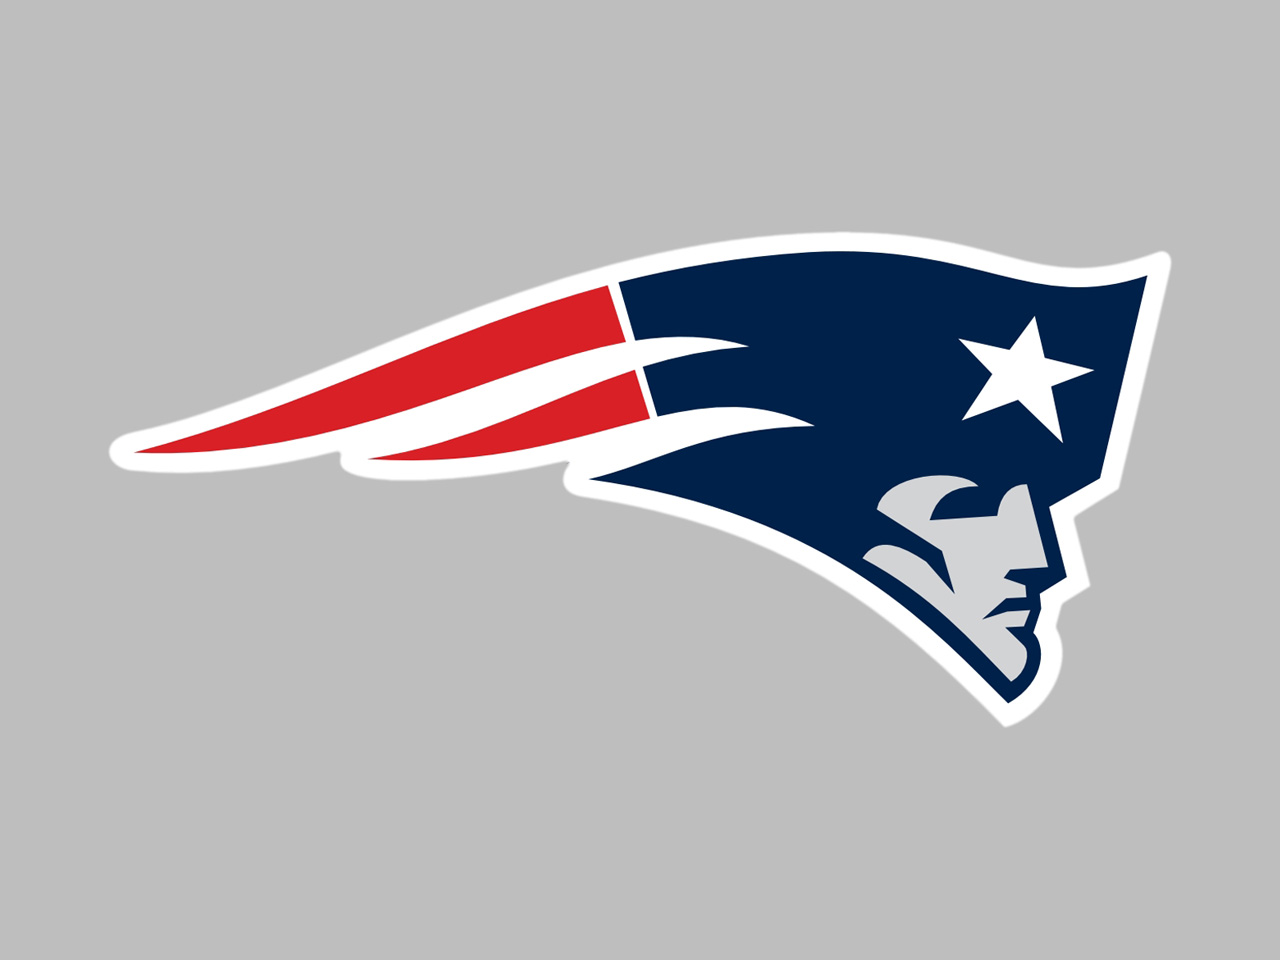 new_england_patriots-1280x960.jpg